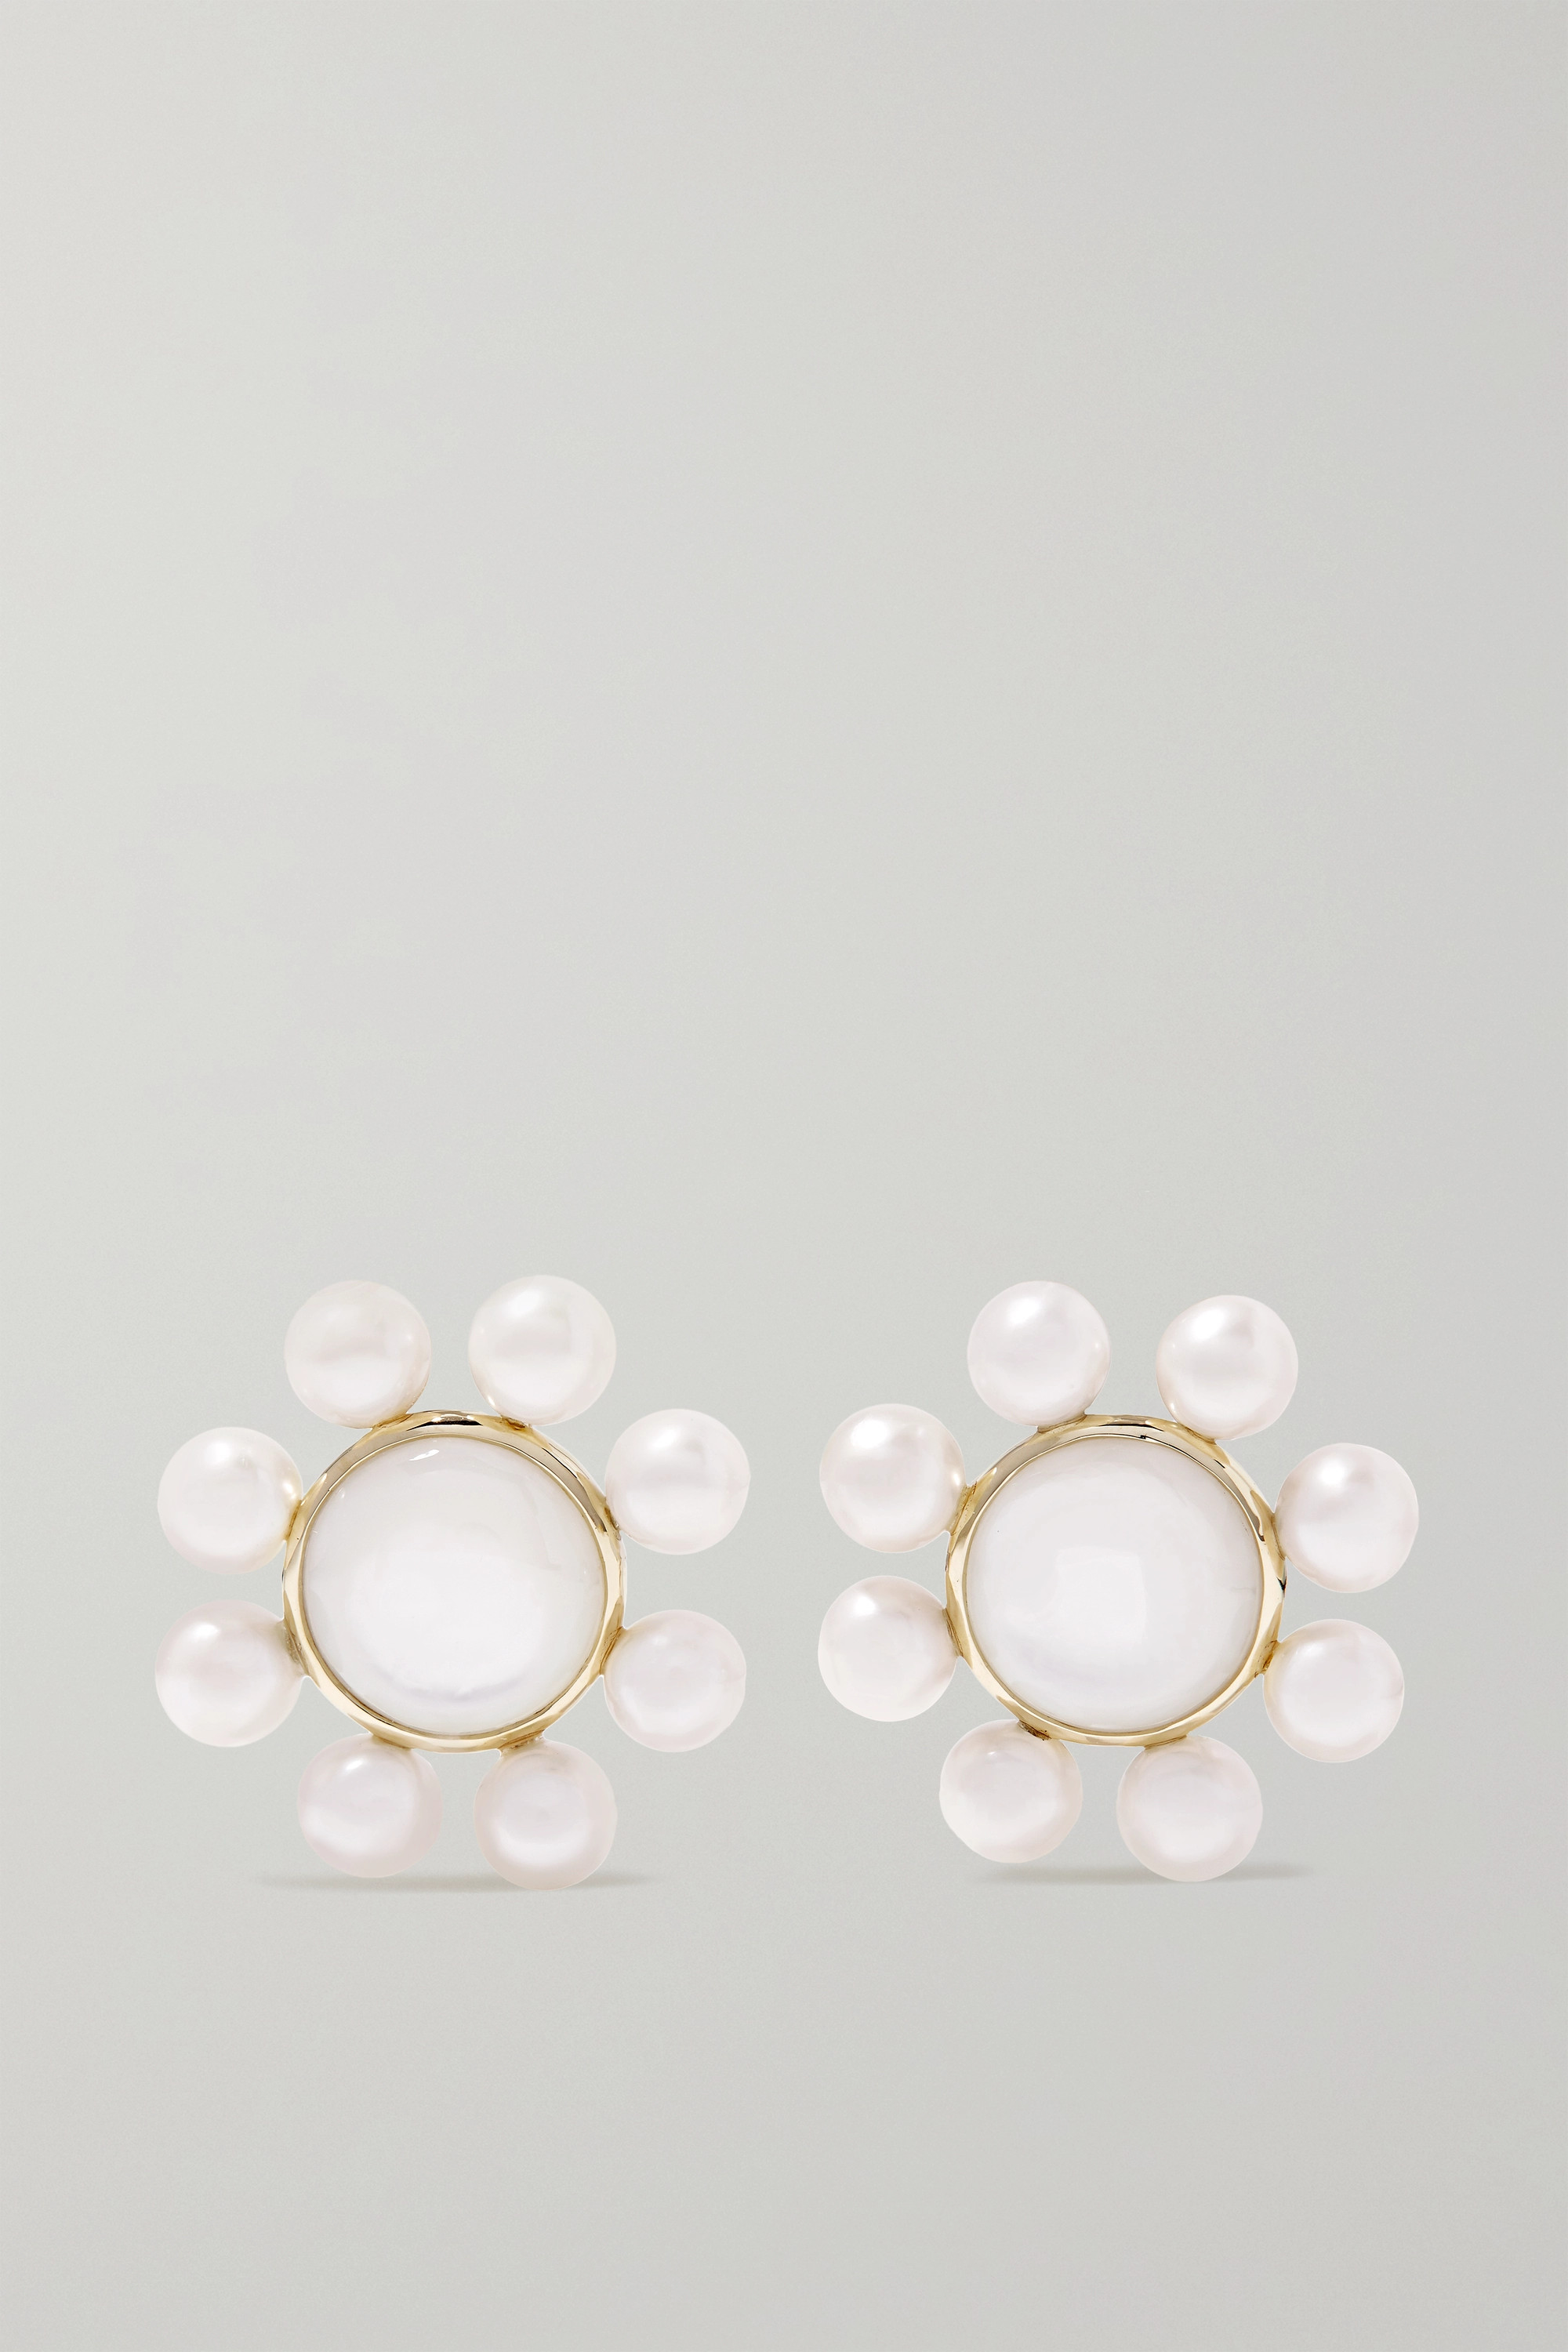 Ippolita Nova 18-karat green gold pearl earrings